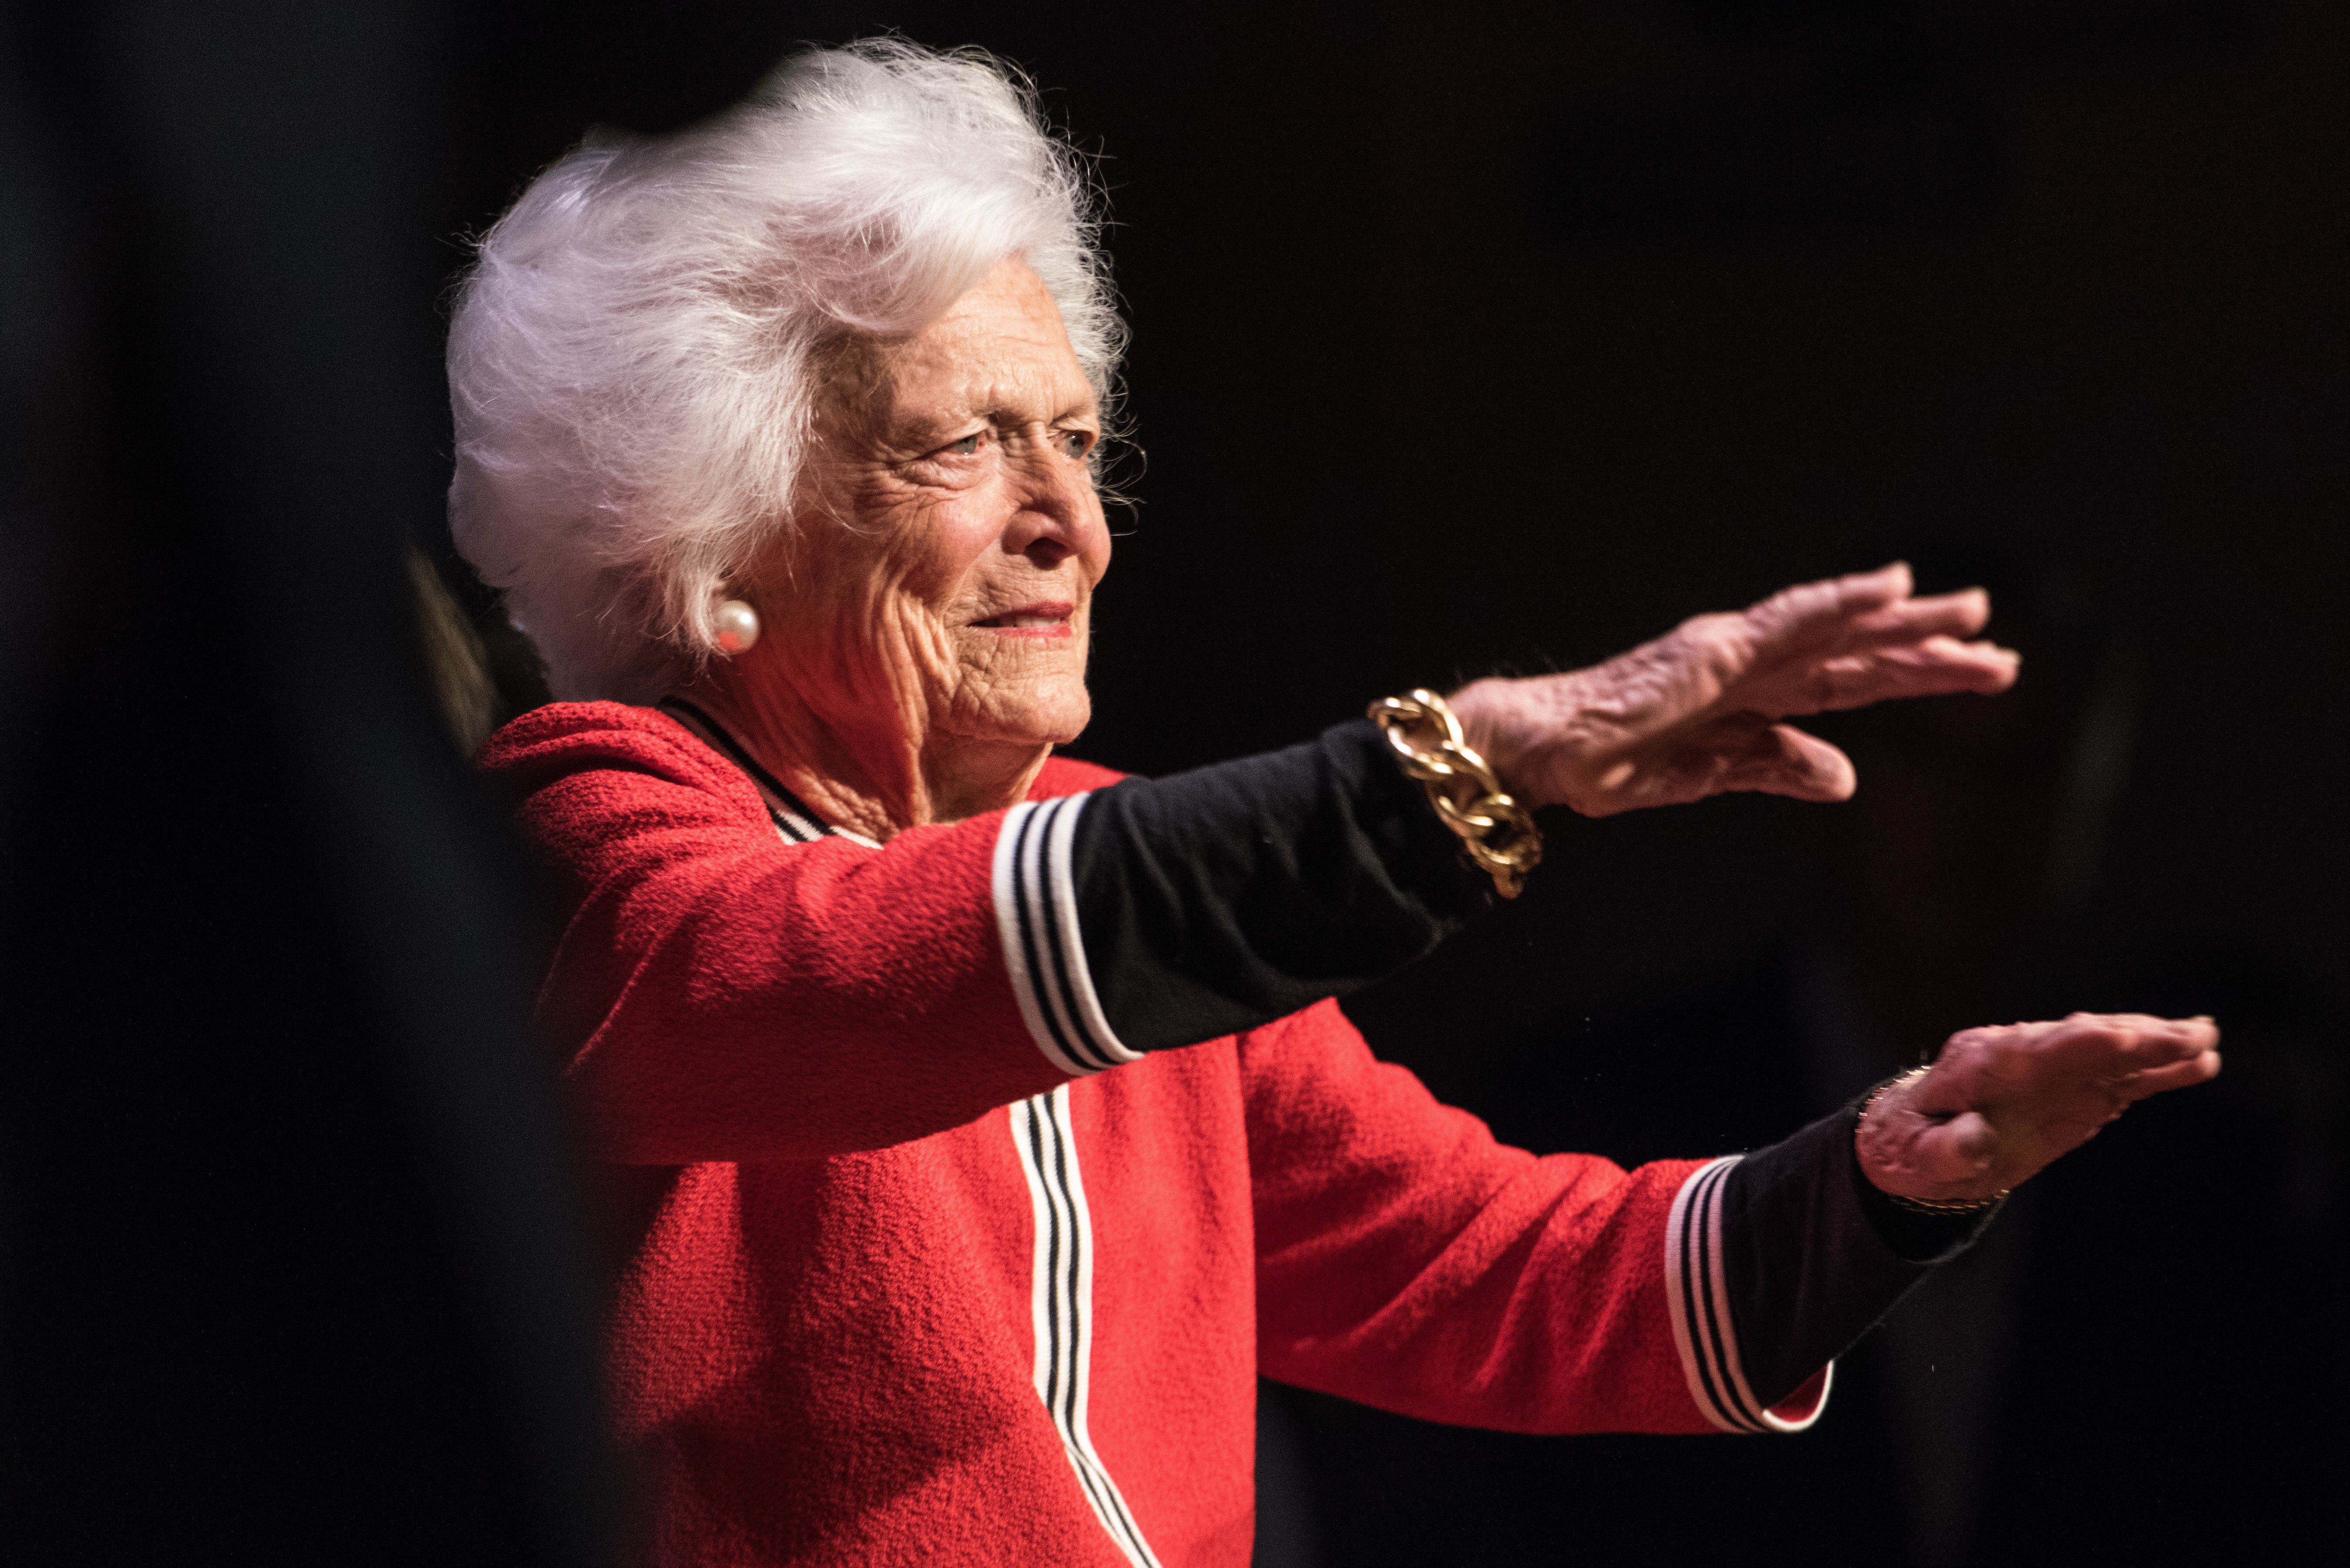 GREENVILLE, SC - FEBRUARY 19: Former first lady Mrs. Barbara Bush waves to the crowd at a campaign event for her son, Republican presidential candidate Jeb Bush, February 19, 2016 in Greenville, South Carolina. The South Carolina Republican primary will be held Saturday, February 20. (Photo by Sean Rayford/Getty Images)